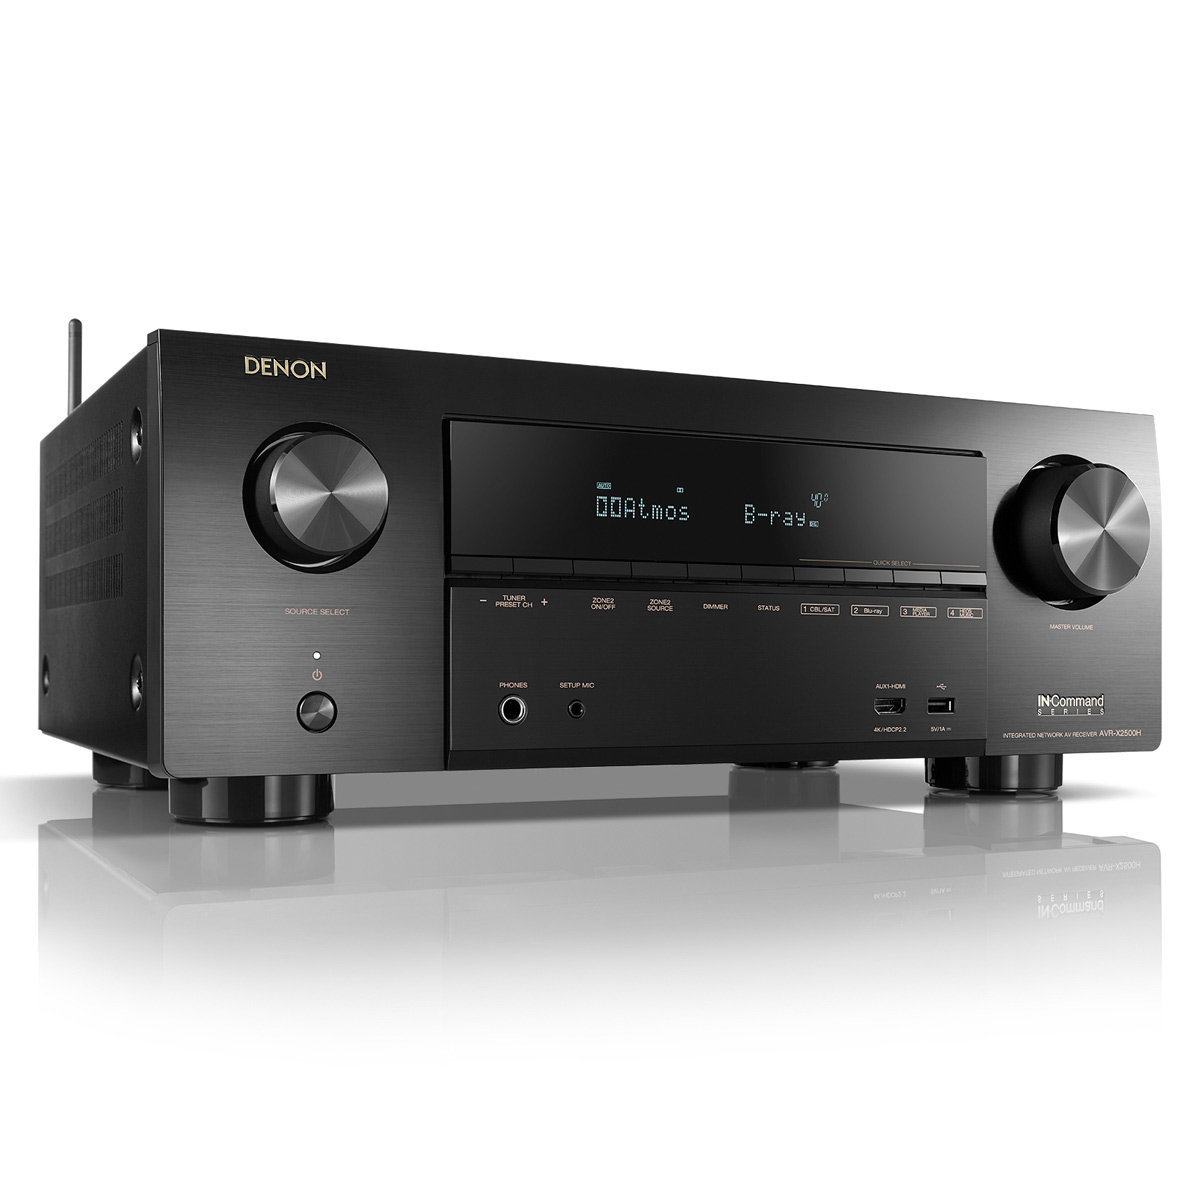 Refurbished : Denon AVR-X2500H Receiver HEOS | World Wide Stereo